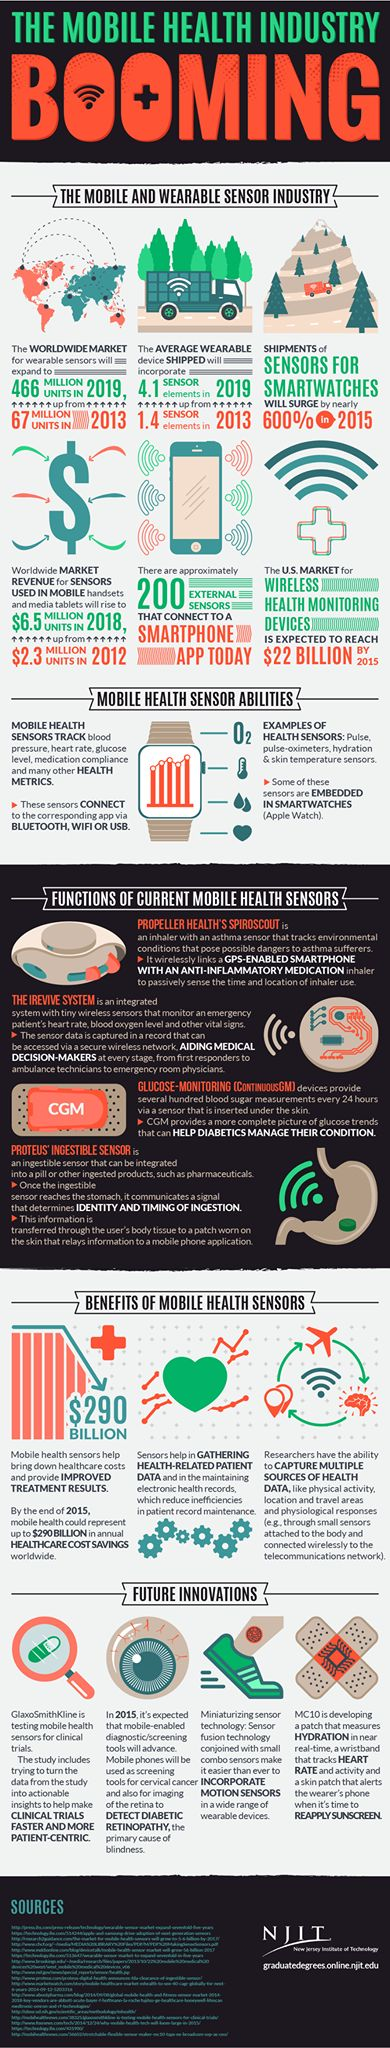 Benefits and Future of Mobile Health. #mobilehealth #healthcare #mhealth https://caredir.com